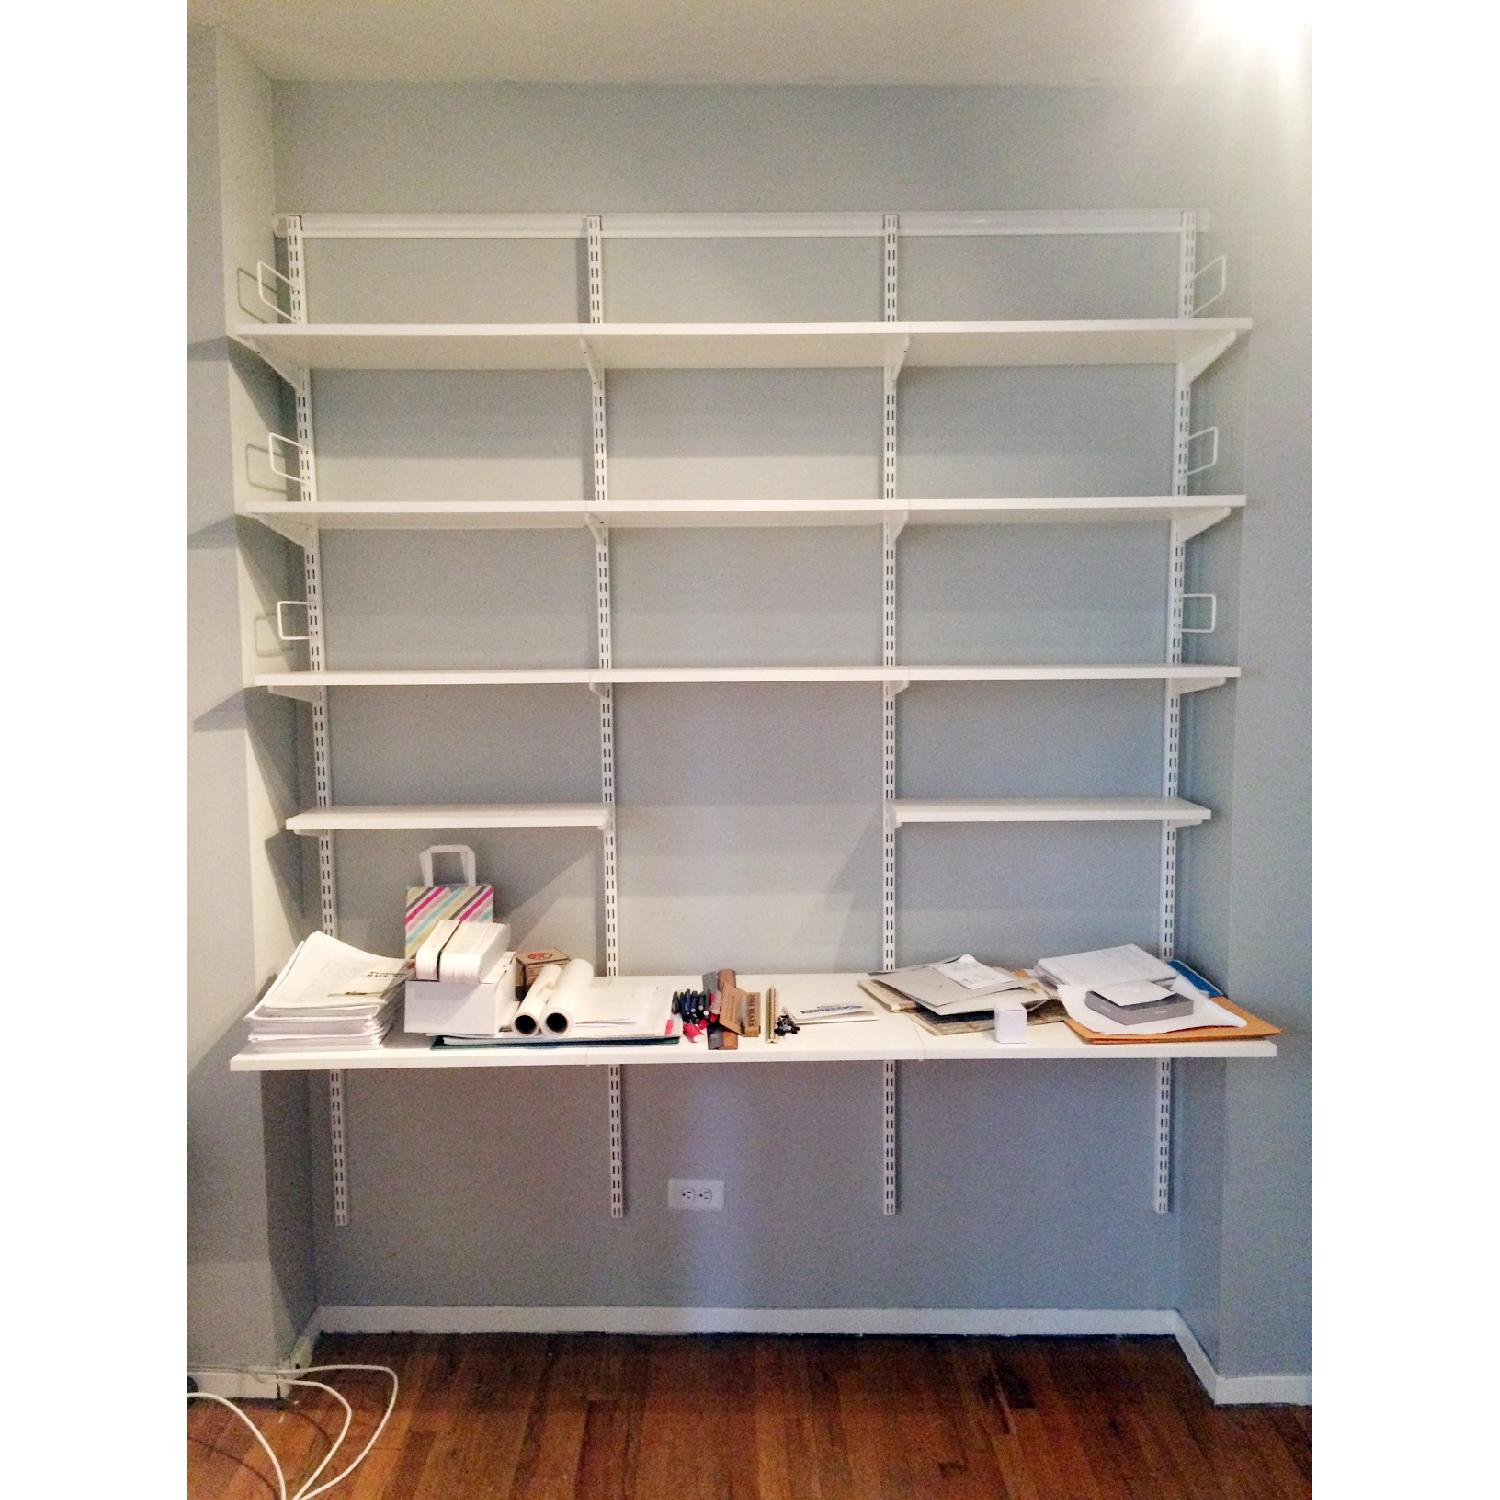 Container Store Elfa Desk and Bookshelf Components - image-2